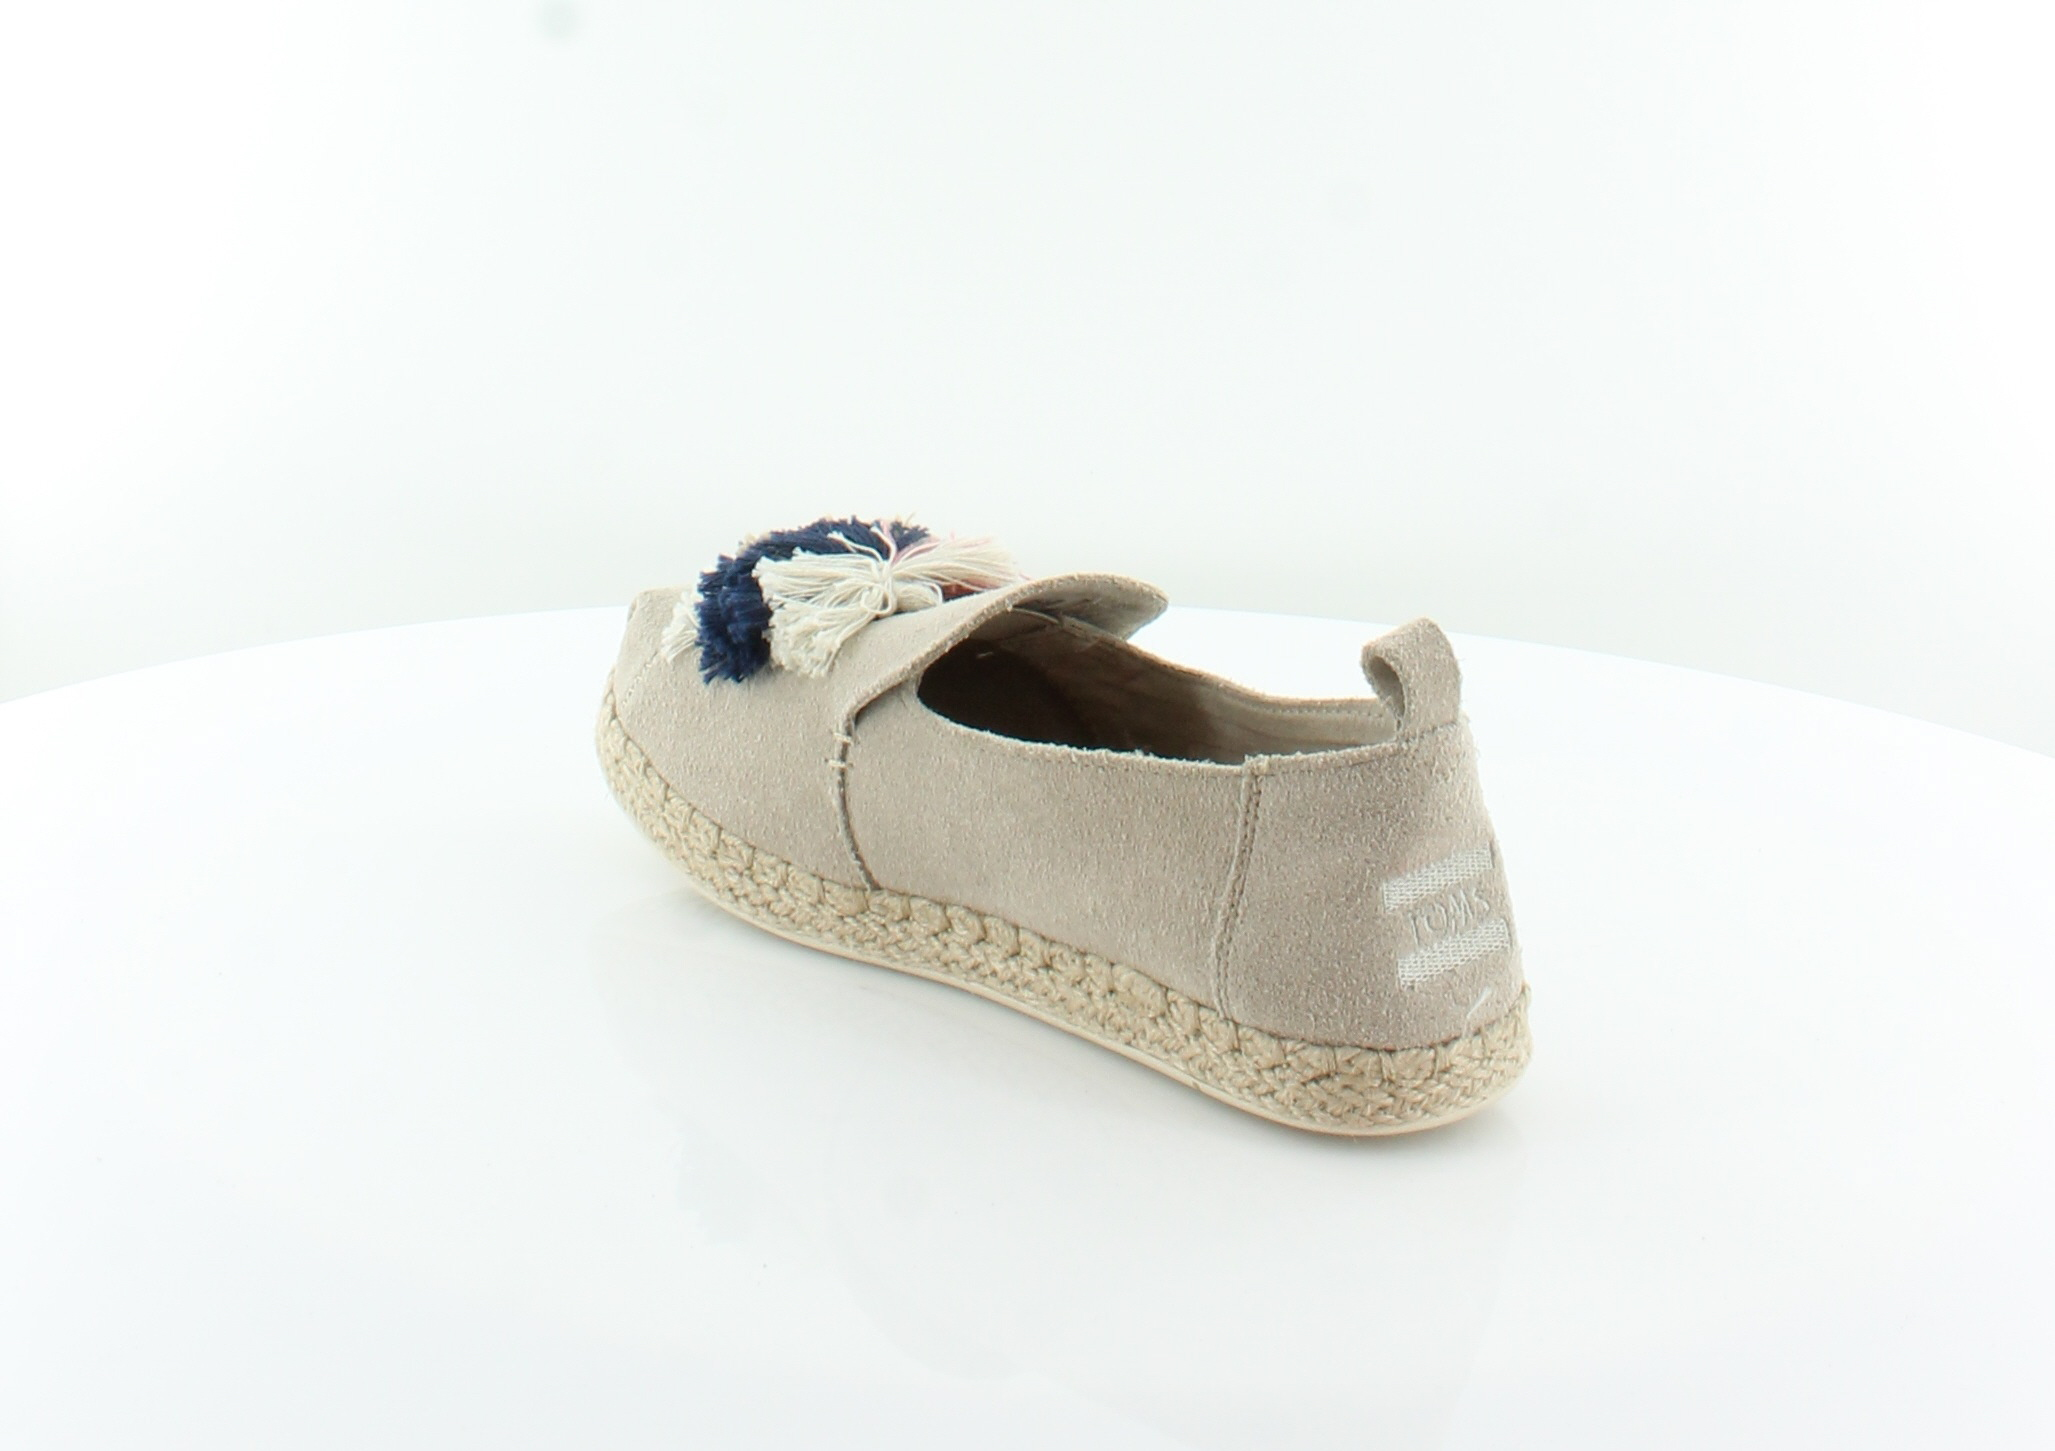 3f00c850f14 TOMS New Deconstructed Alpargata Brown Womens Shoes Size 7 M Flats MSRP  98  5 5 of 5 See More